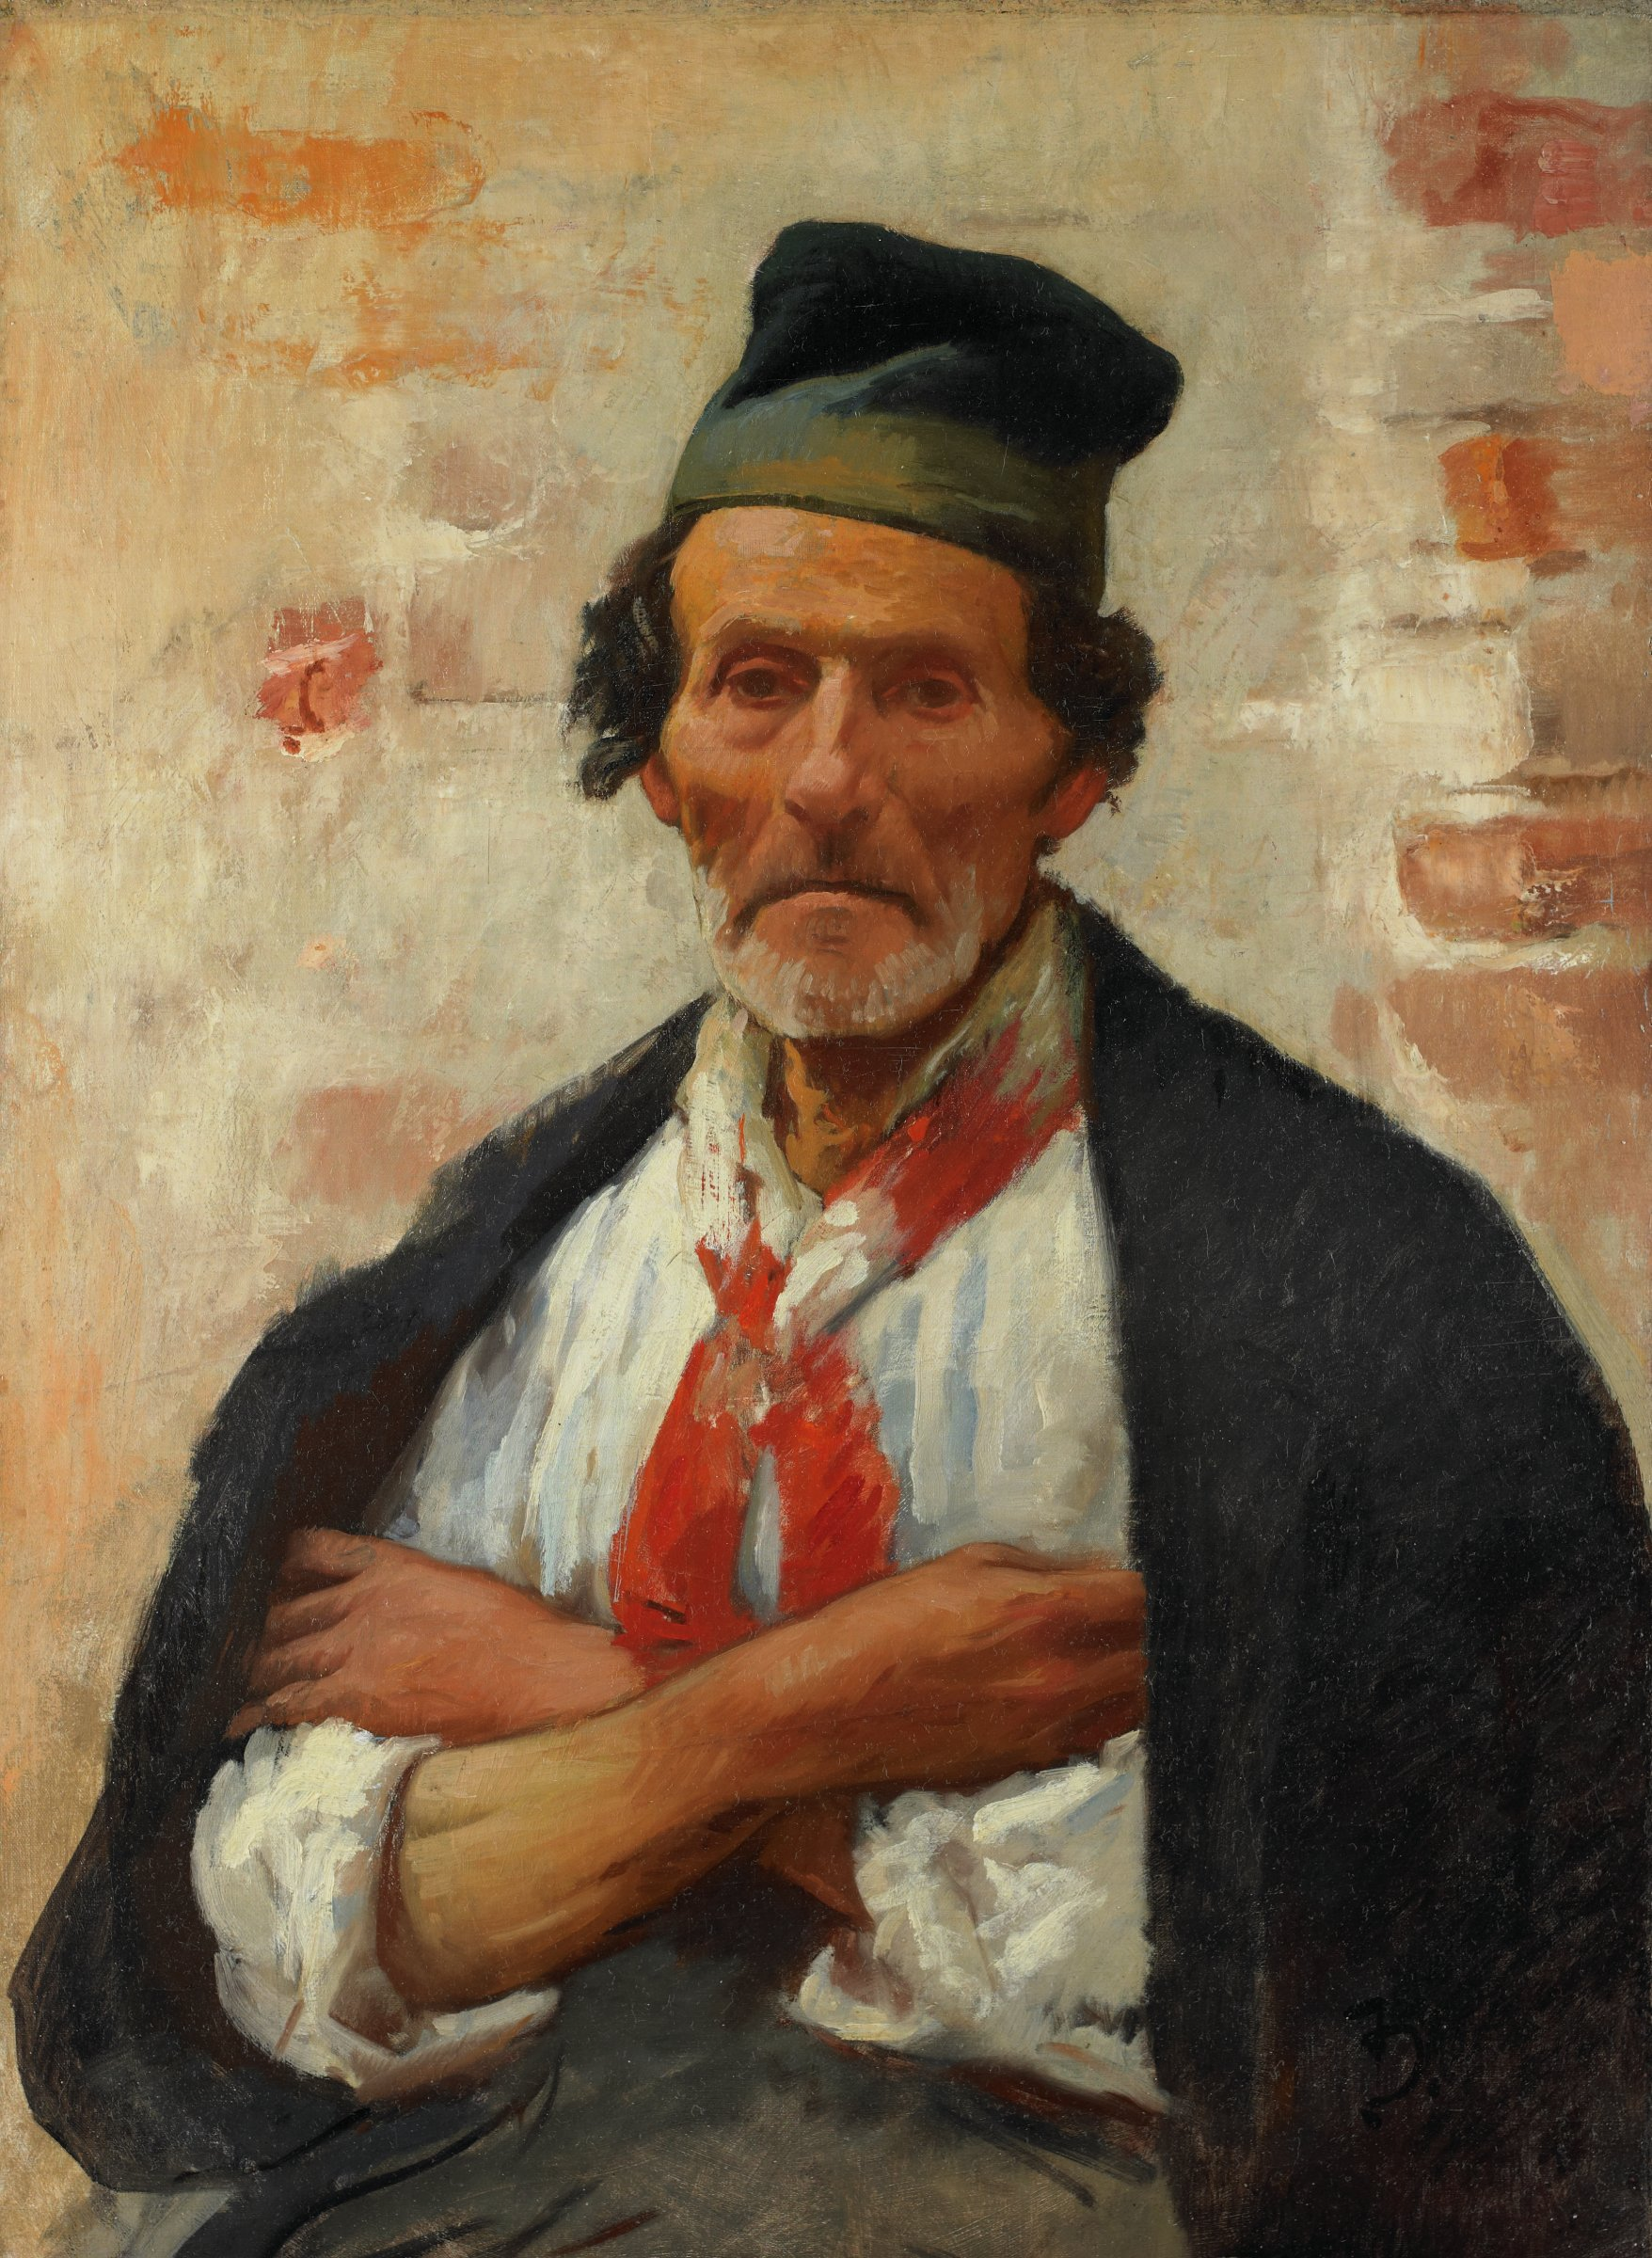 An elderly man wearing a cap, neckerchief, and coat draped around his shoulders; his arms are crossed, and he gazes directly at the viewer.